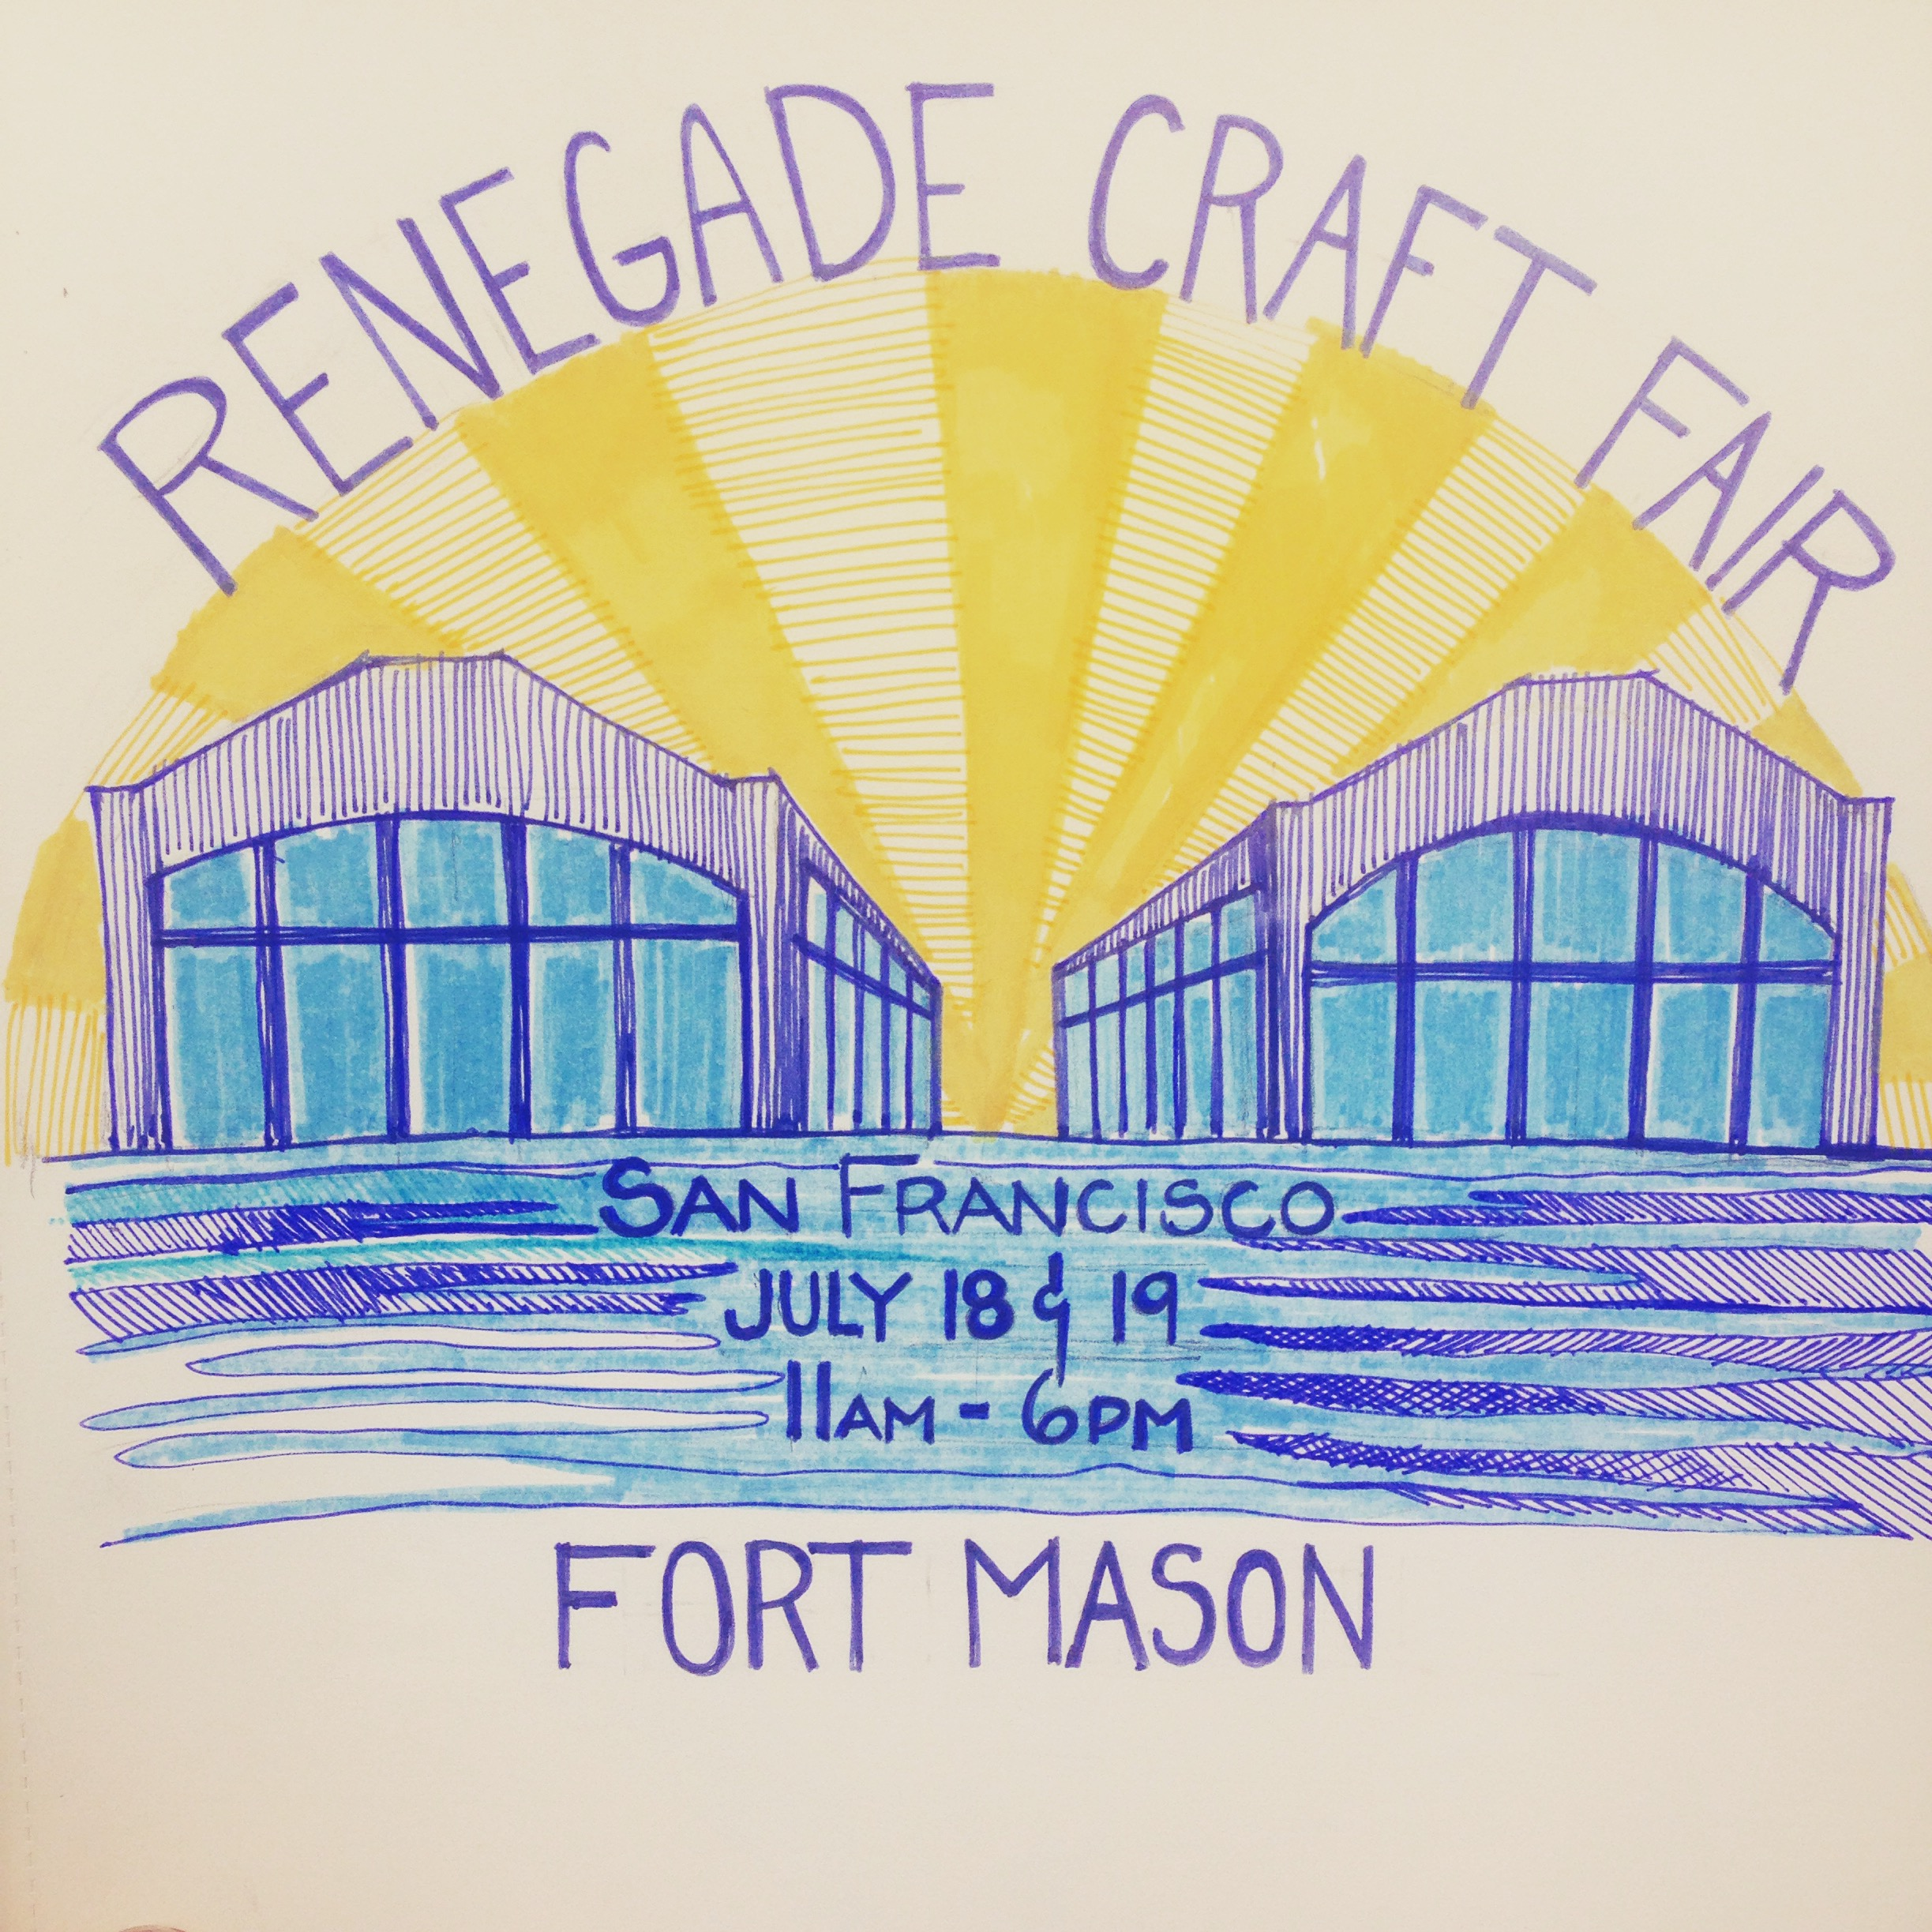 Renegade Craft Fair - Illustration by Madeline Trait